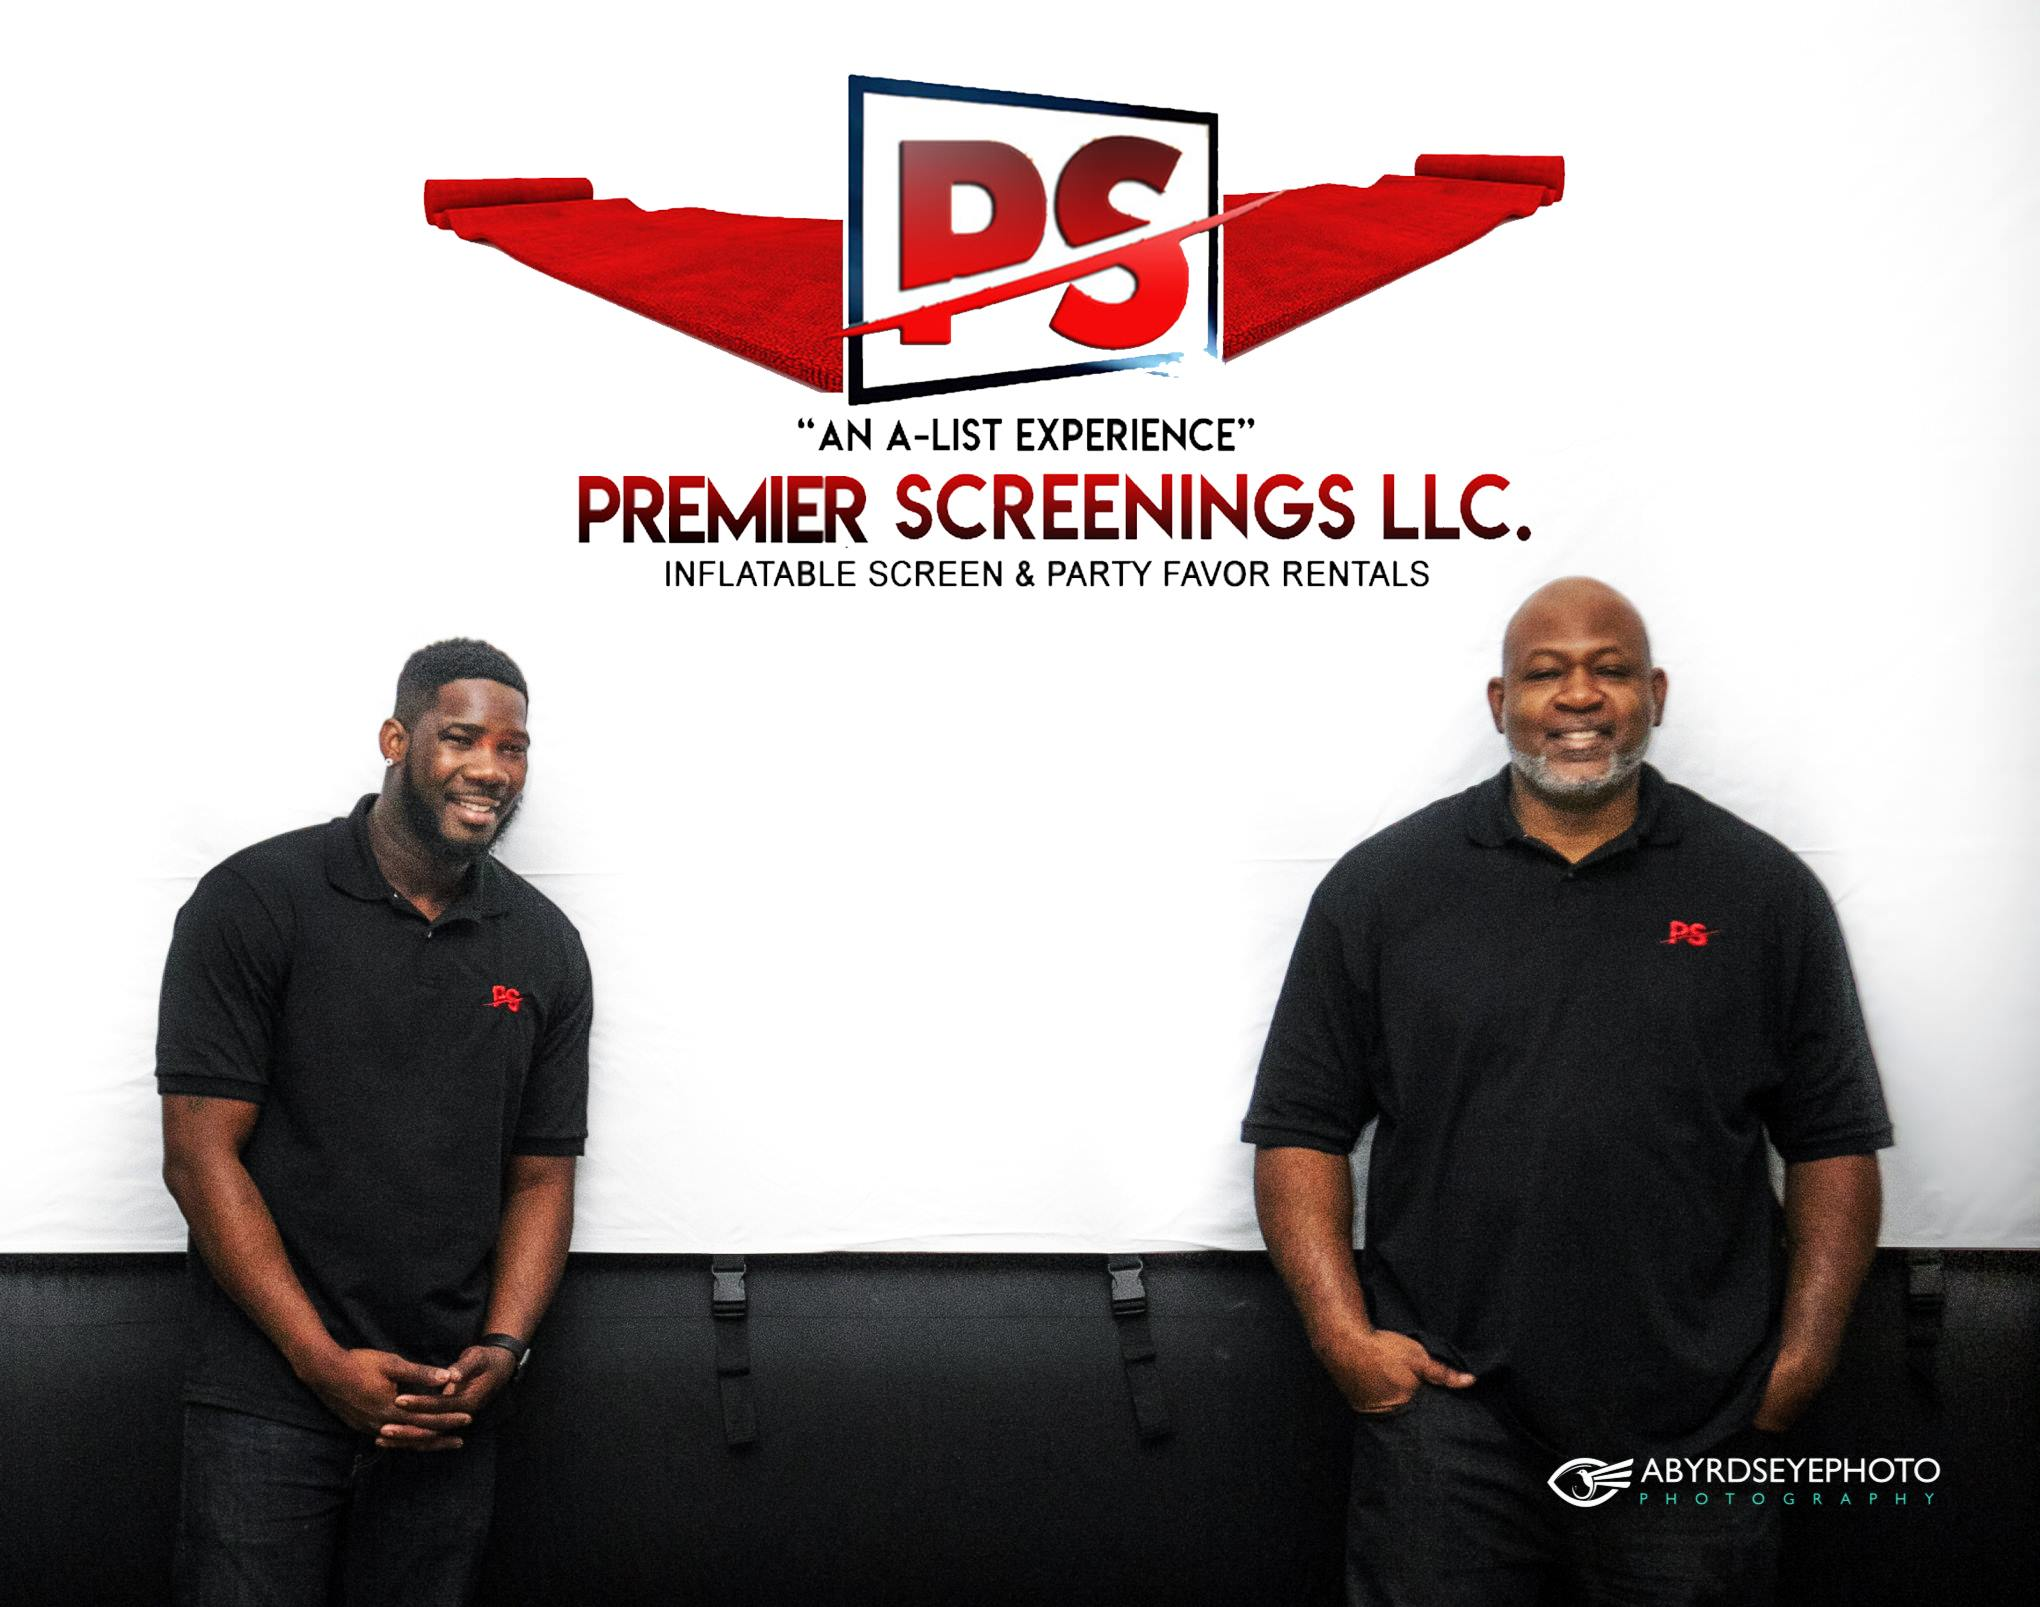 The two owners of Premier Screenings LLC. Tracy and Moni.